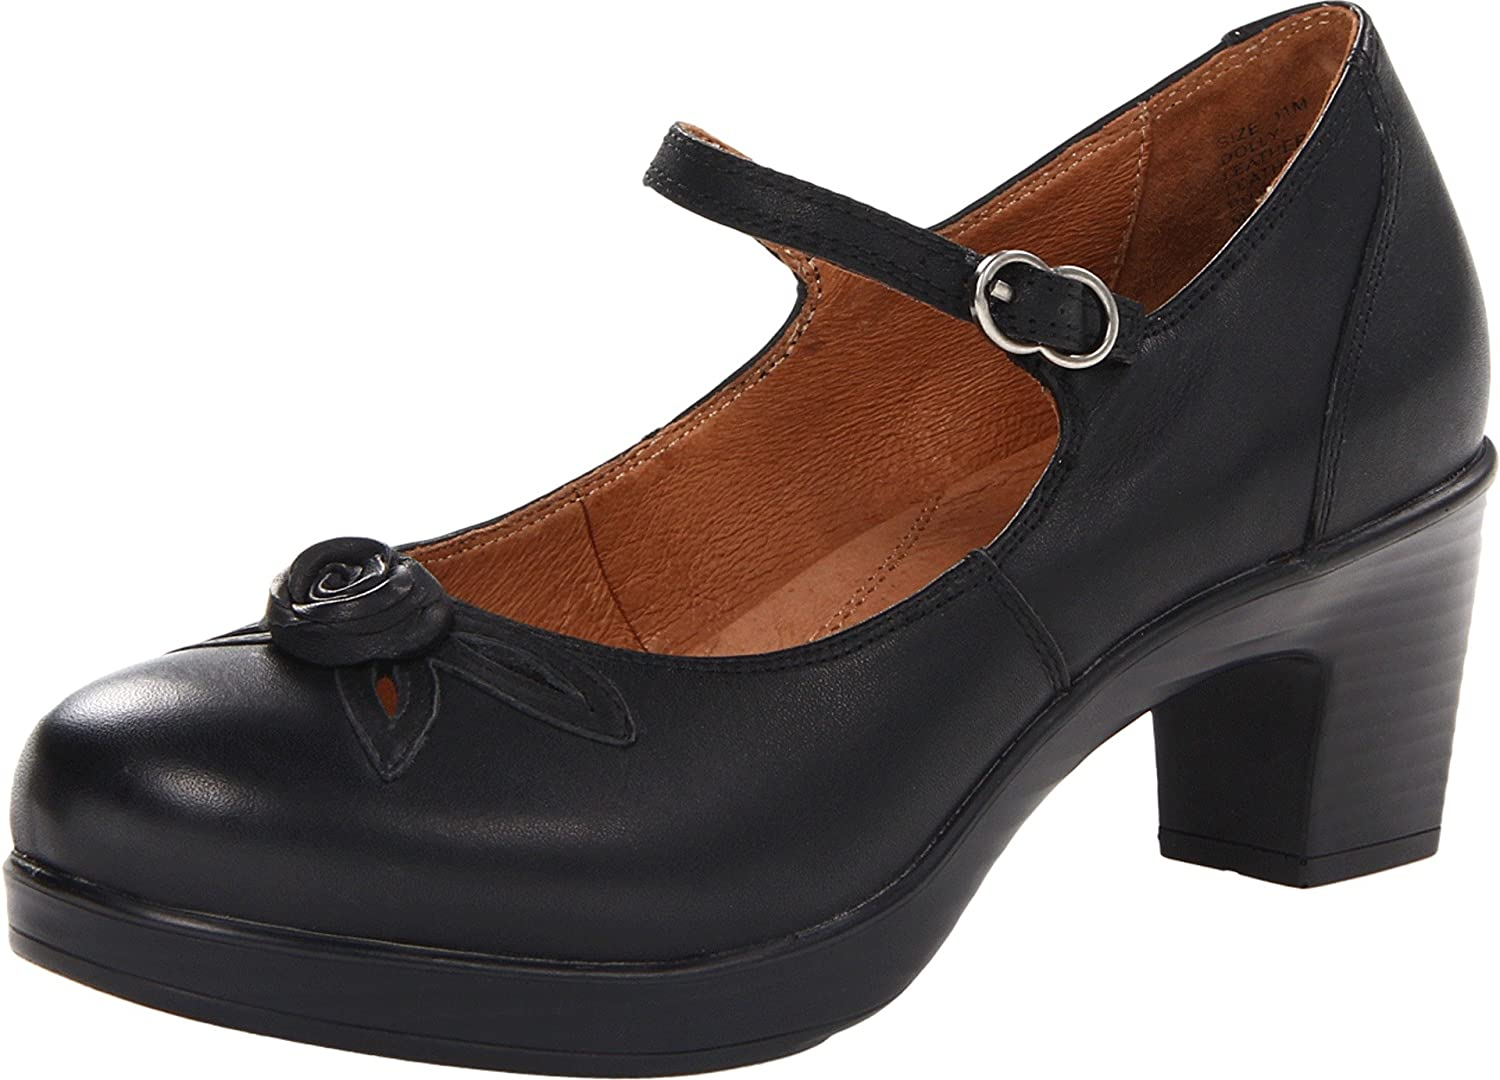 Kravings by Klogs Women's Dolly Mary Janes